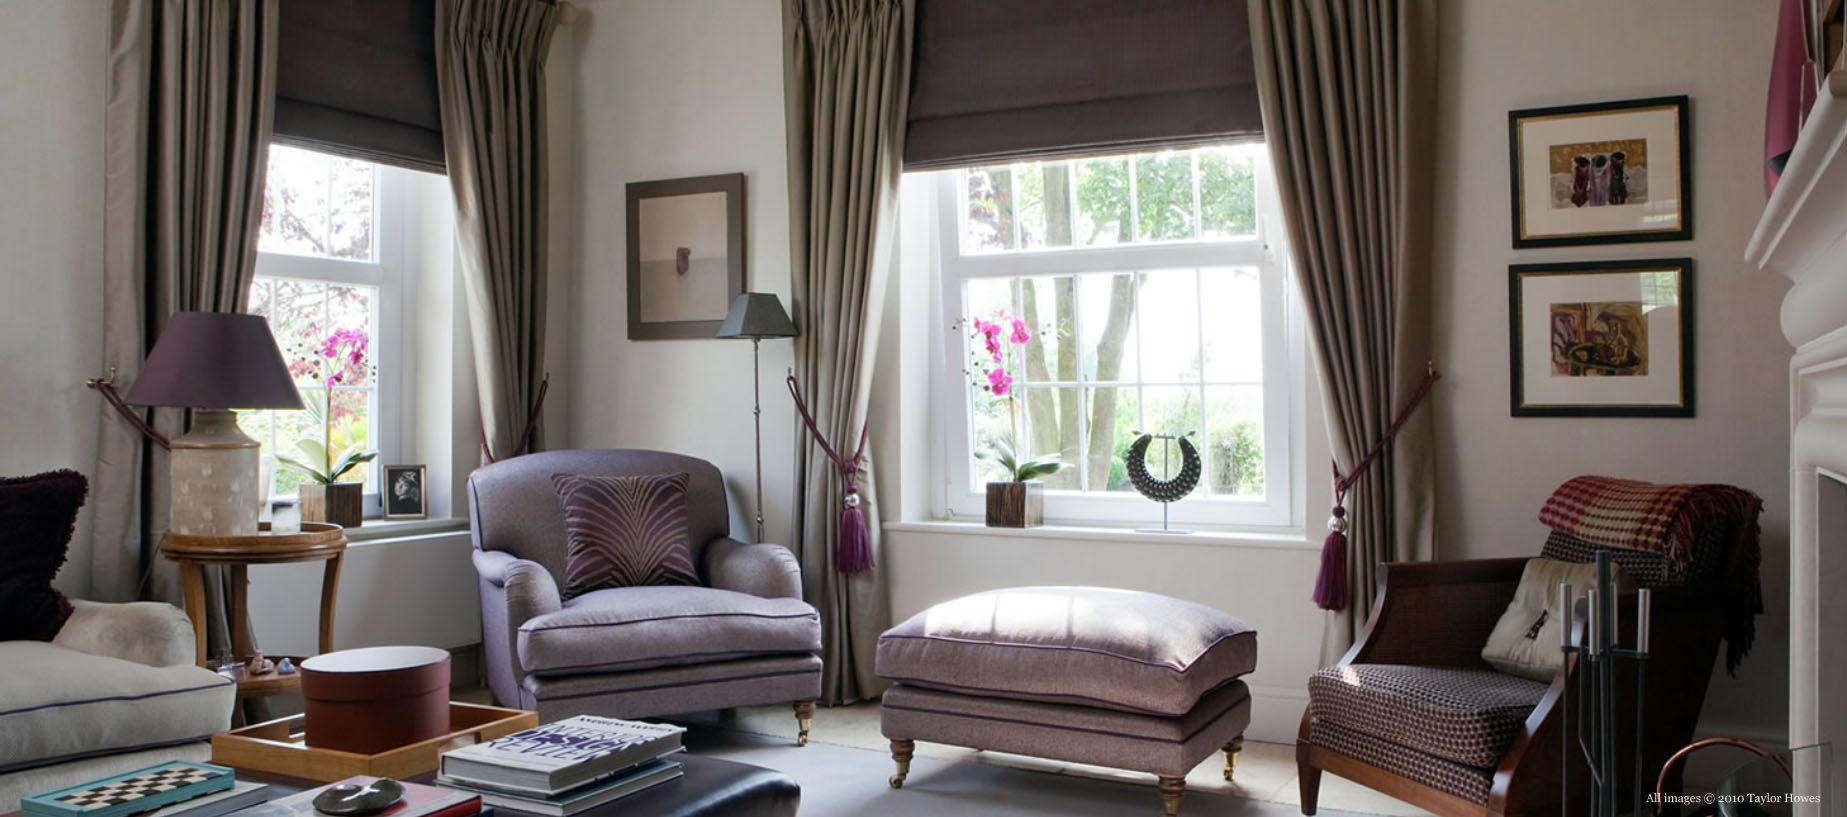 Country house in wiltshire idesignarch interior design for My home interior design